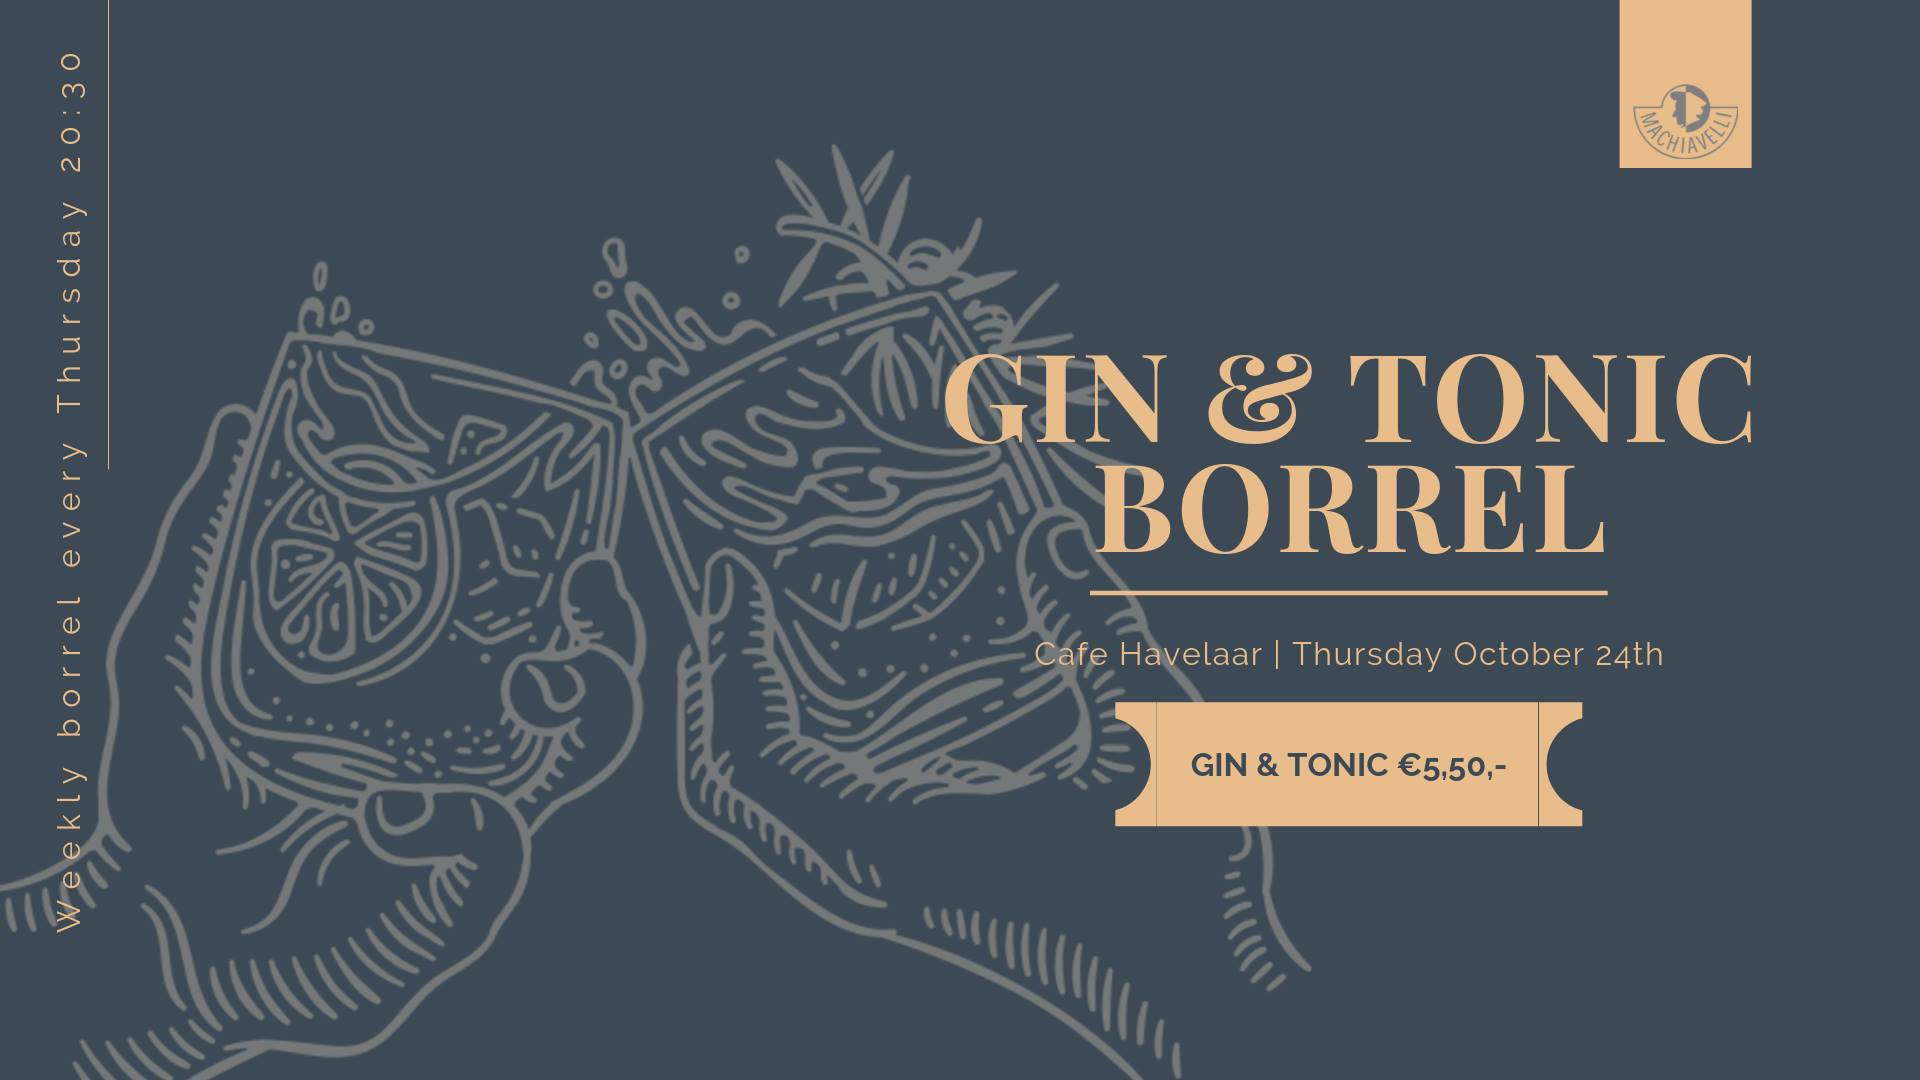 Gin & Tonic Borrel